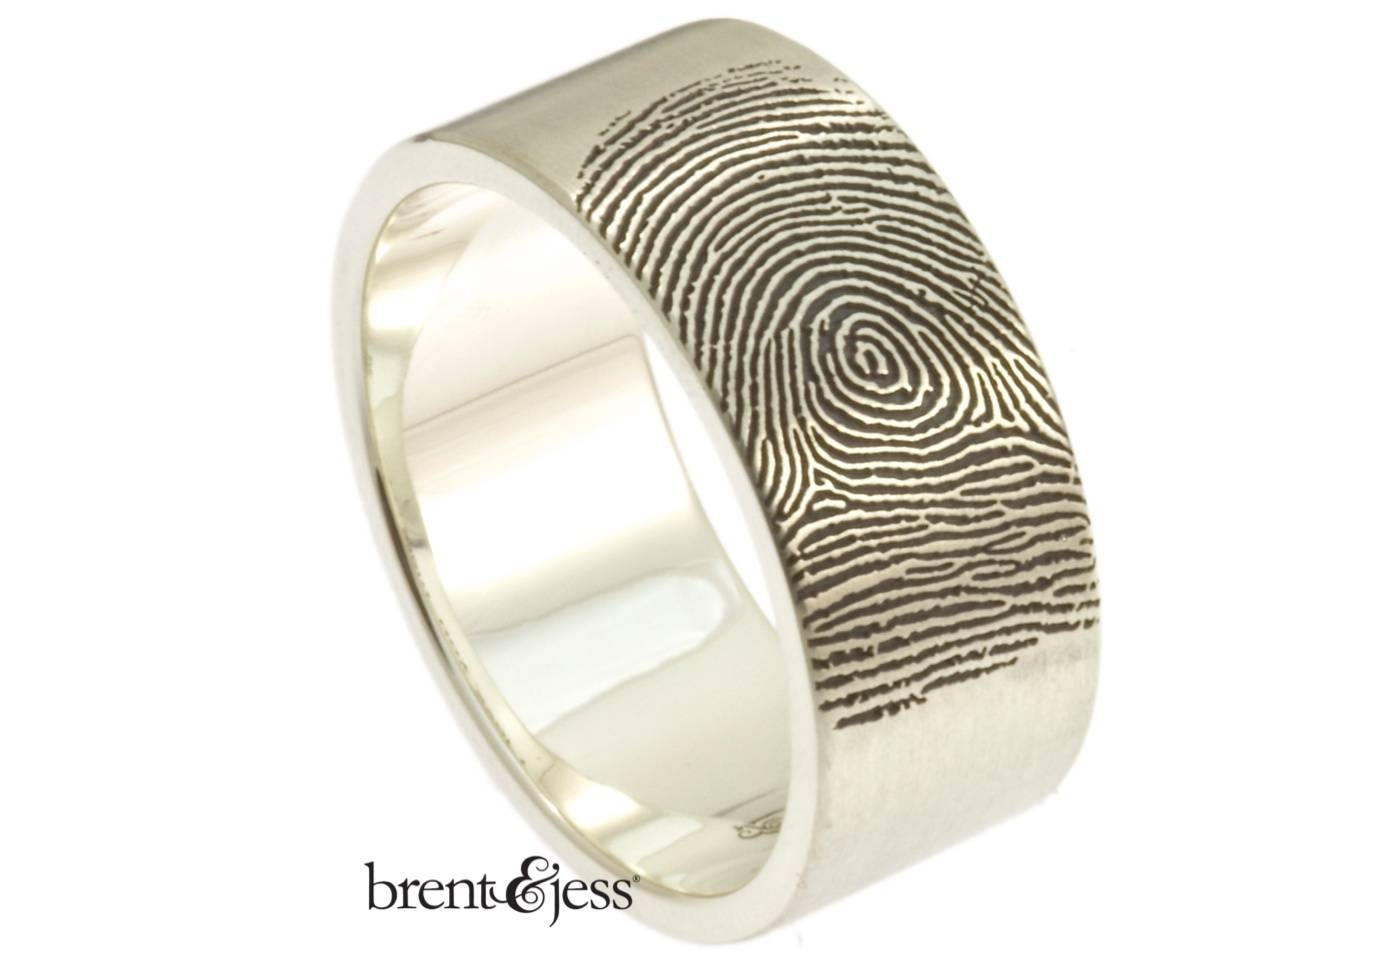 Modern Wedding Rings – Brent&jess Blog – A Spotlight On Our Throughout Contemporary Wedding Rings (View 9 of 15)